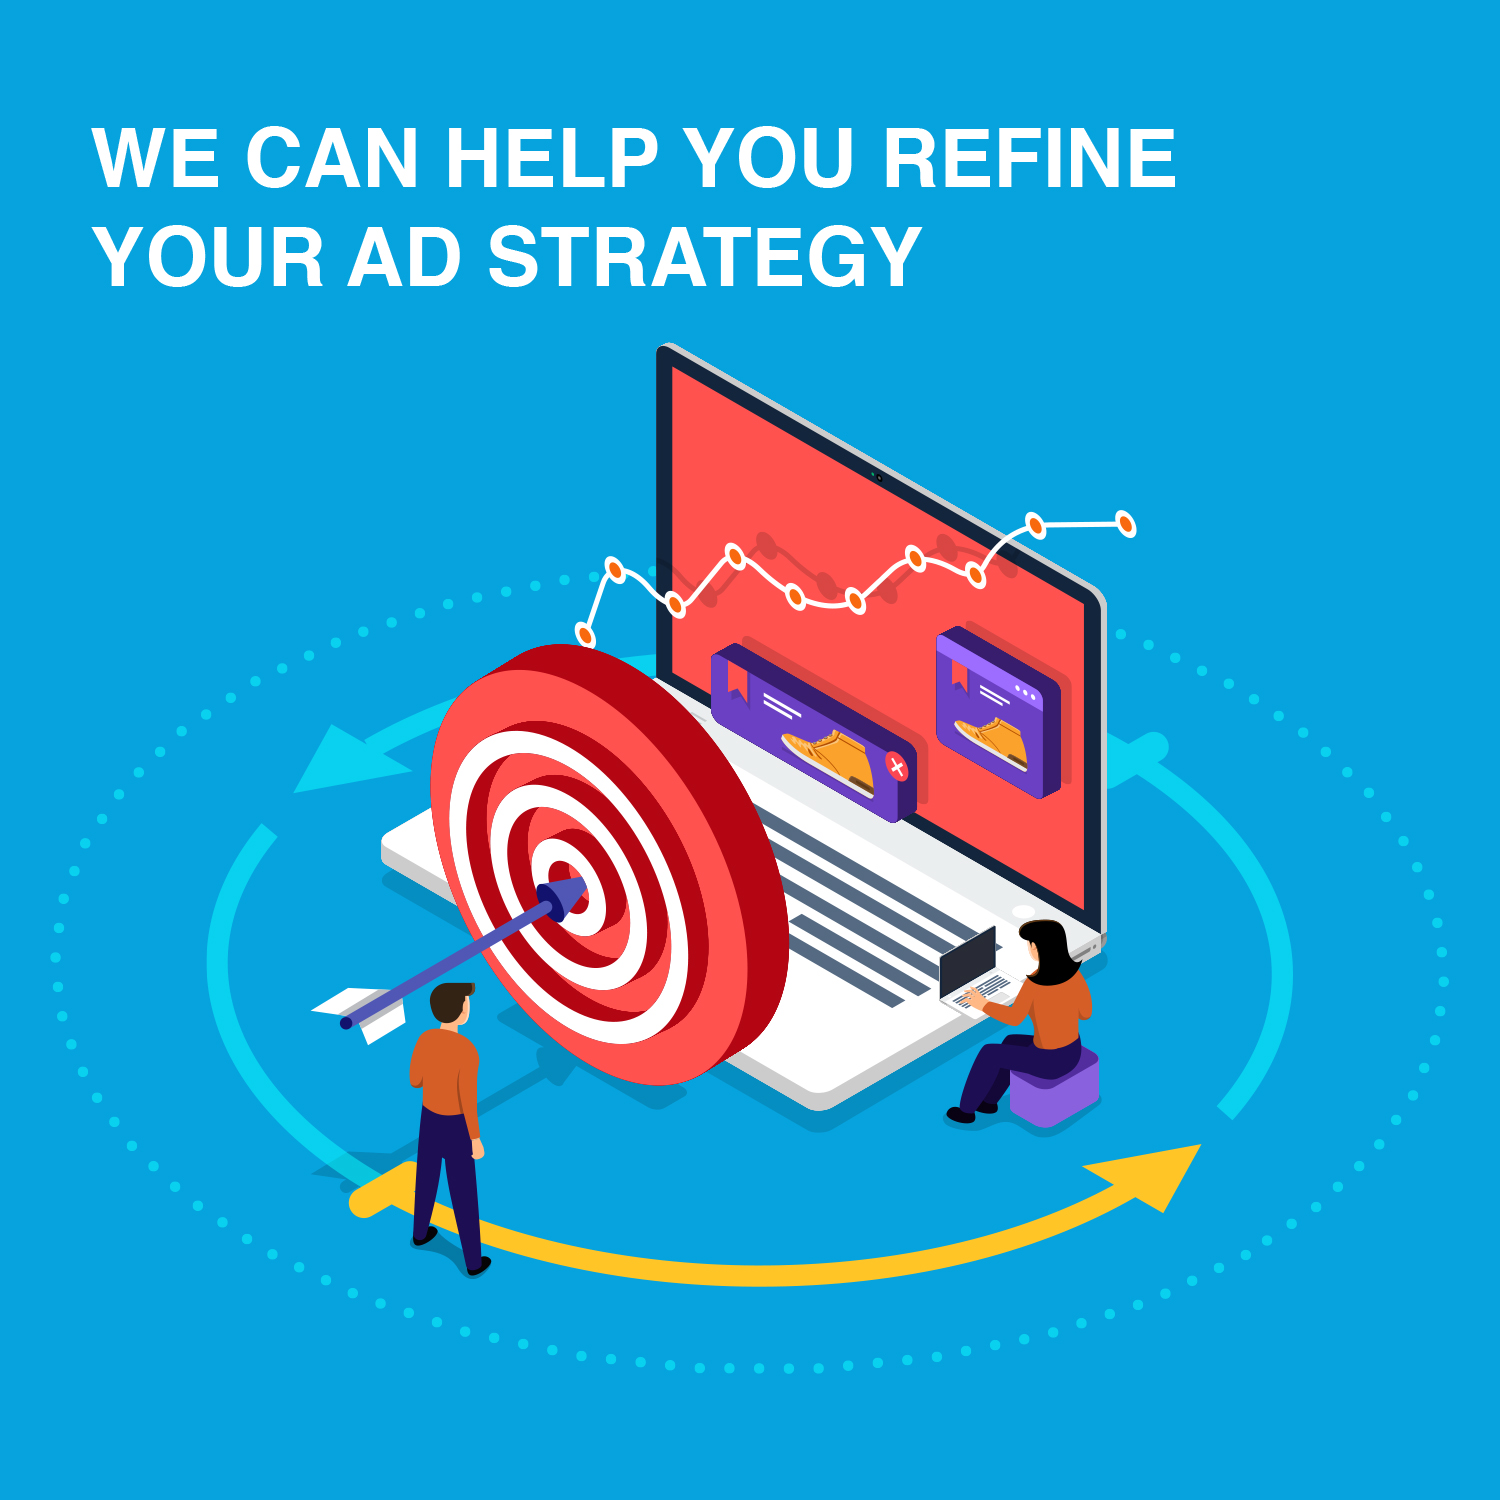 06_REFINE YOUR AD STRATEGY.jpg